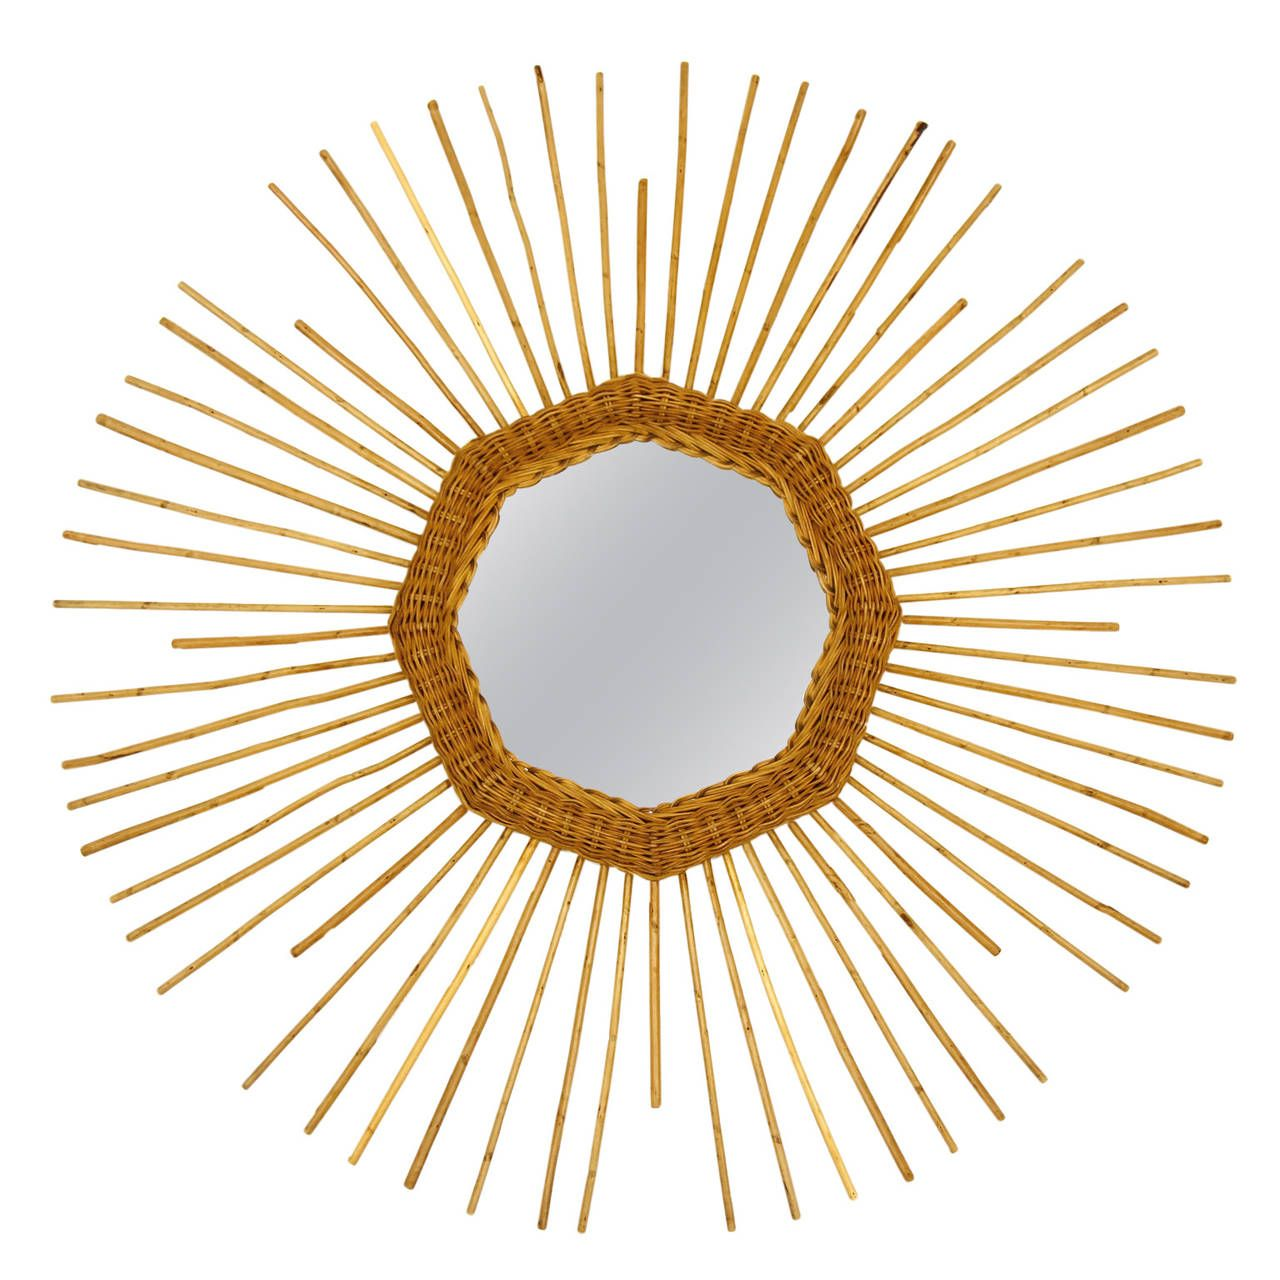 Exceptional French Rattan Sunburst Mirror | From a unique collection of antique and modern wall mirrors at https://www.1stdibs.com/furniture/mirrors/wall-mirrors/